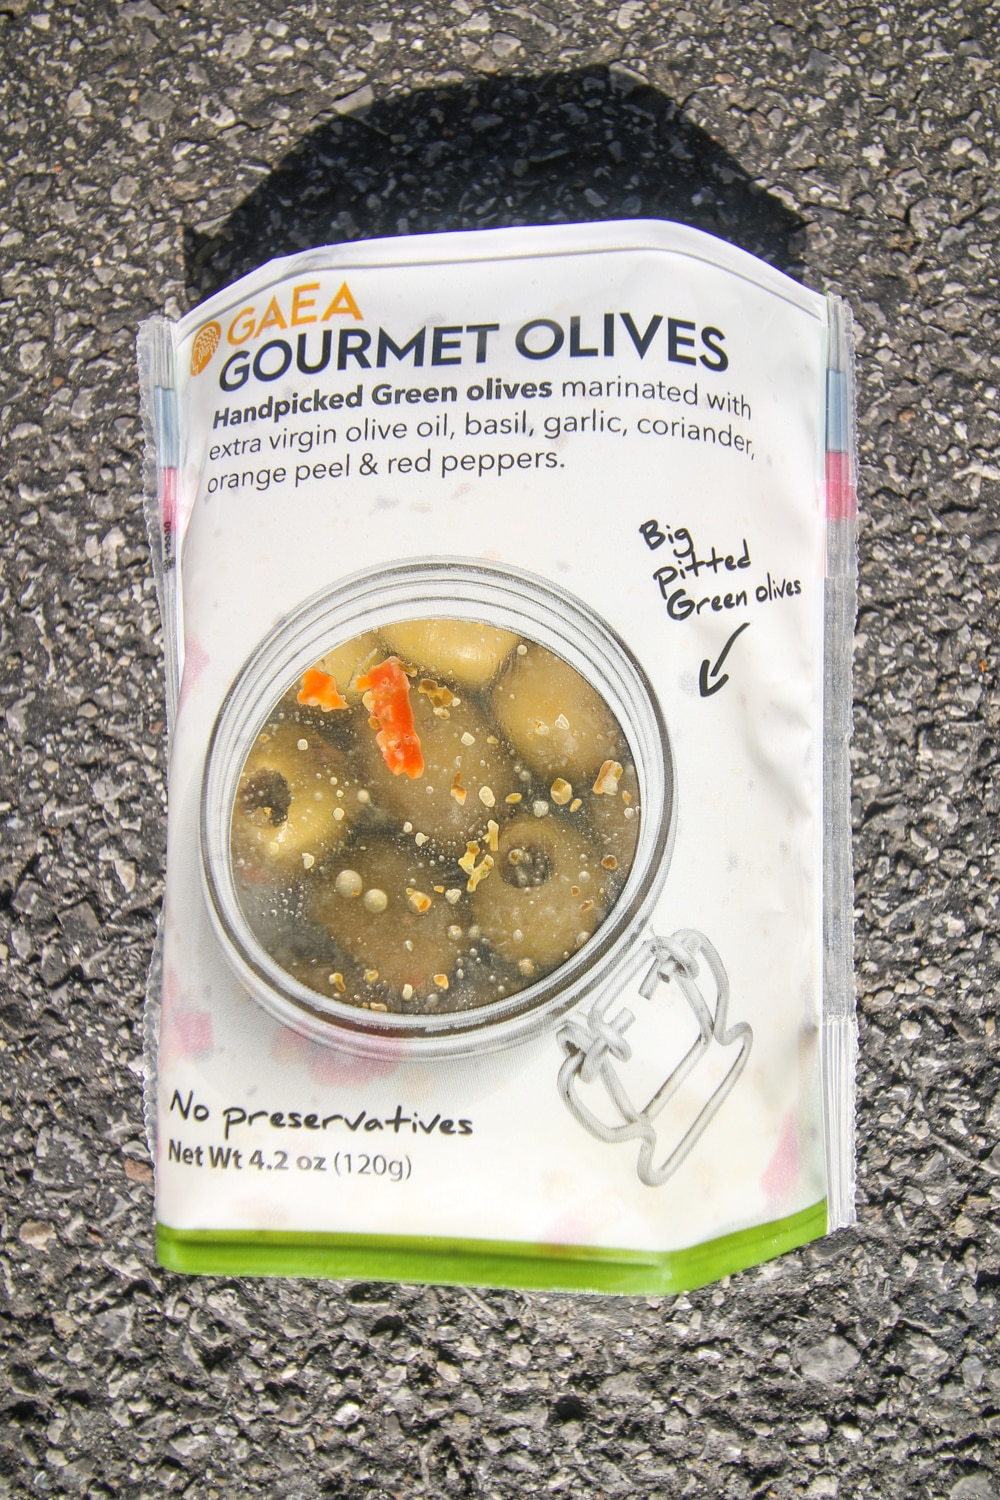 A package of gourmet olives.